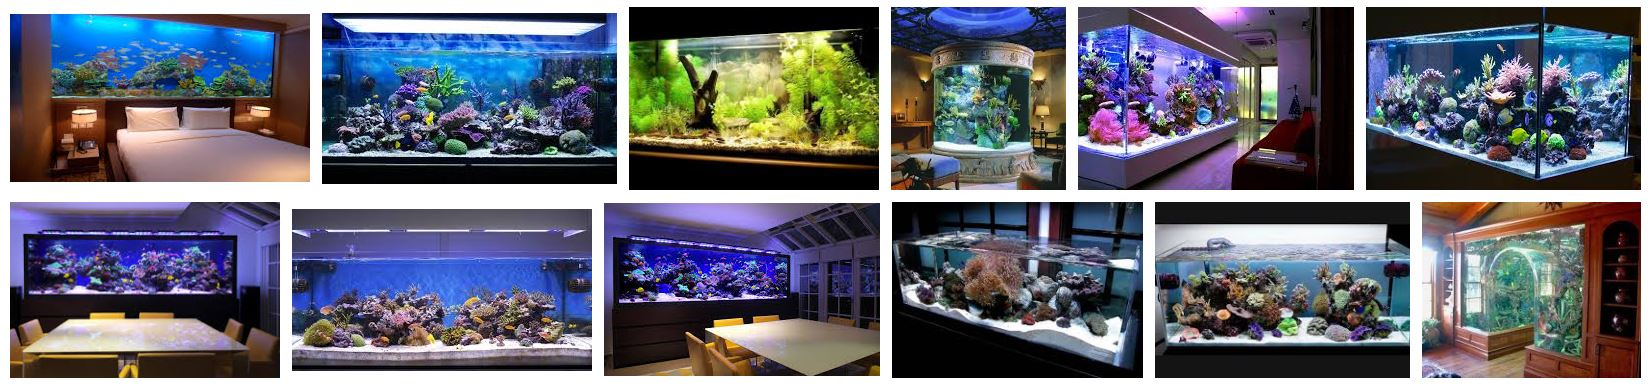 Aquatic Life Aquariums